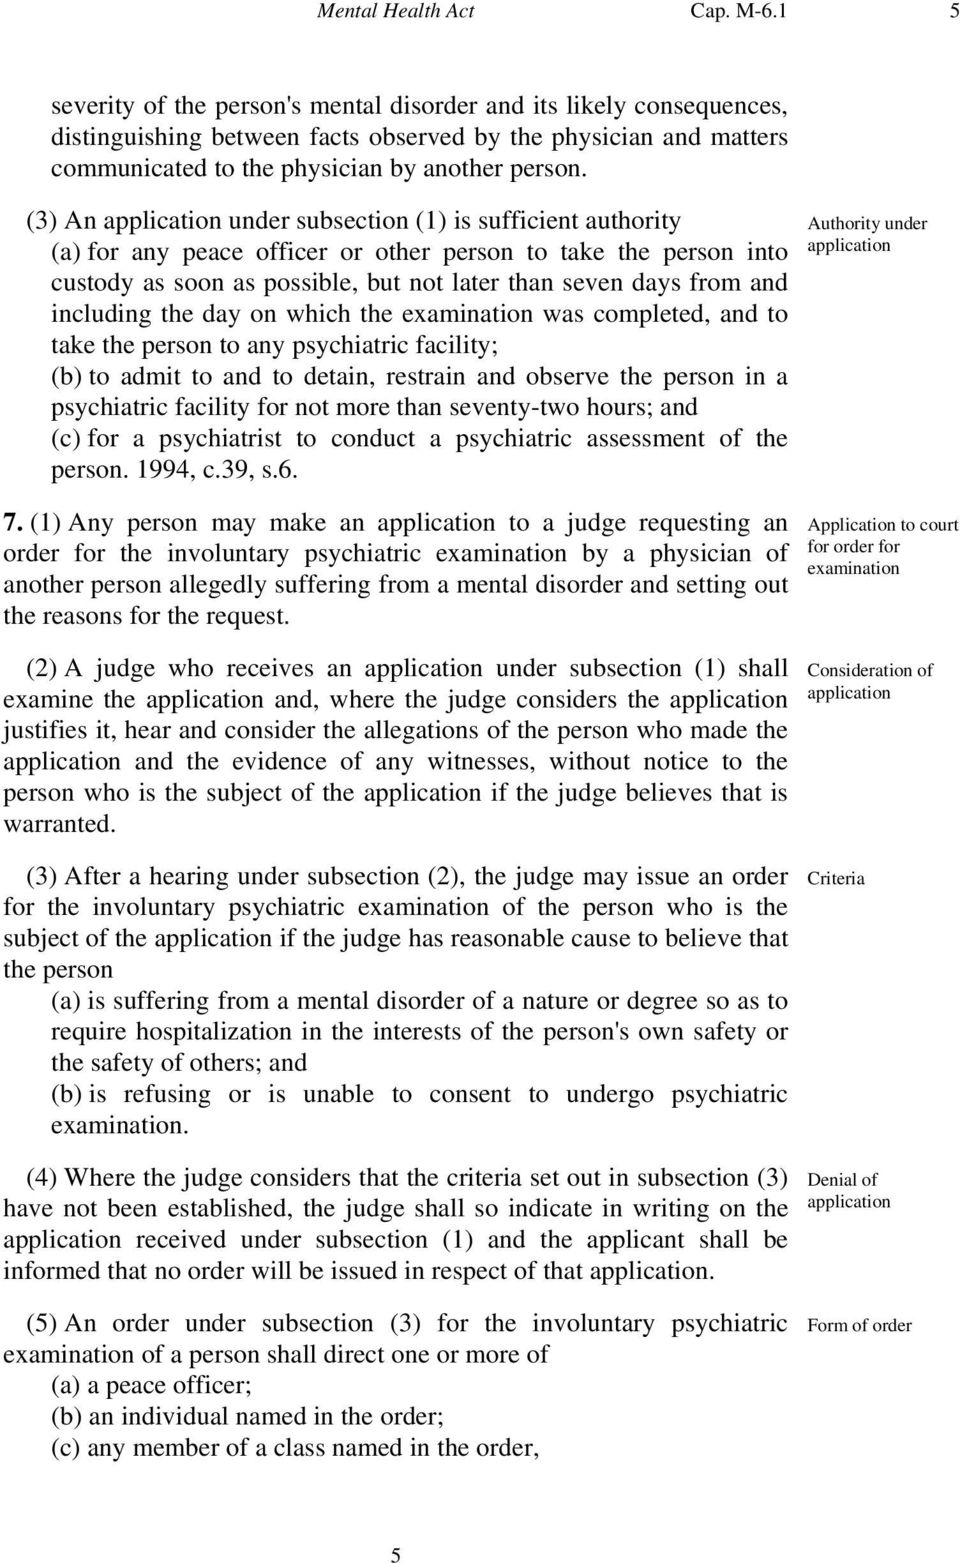 (3) An application under subsection (1) is sufficient authority (a) for any peace officer or other person to take the person into custody as soon as possible, but not later than seven days from and